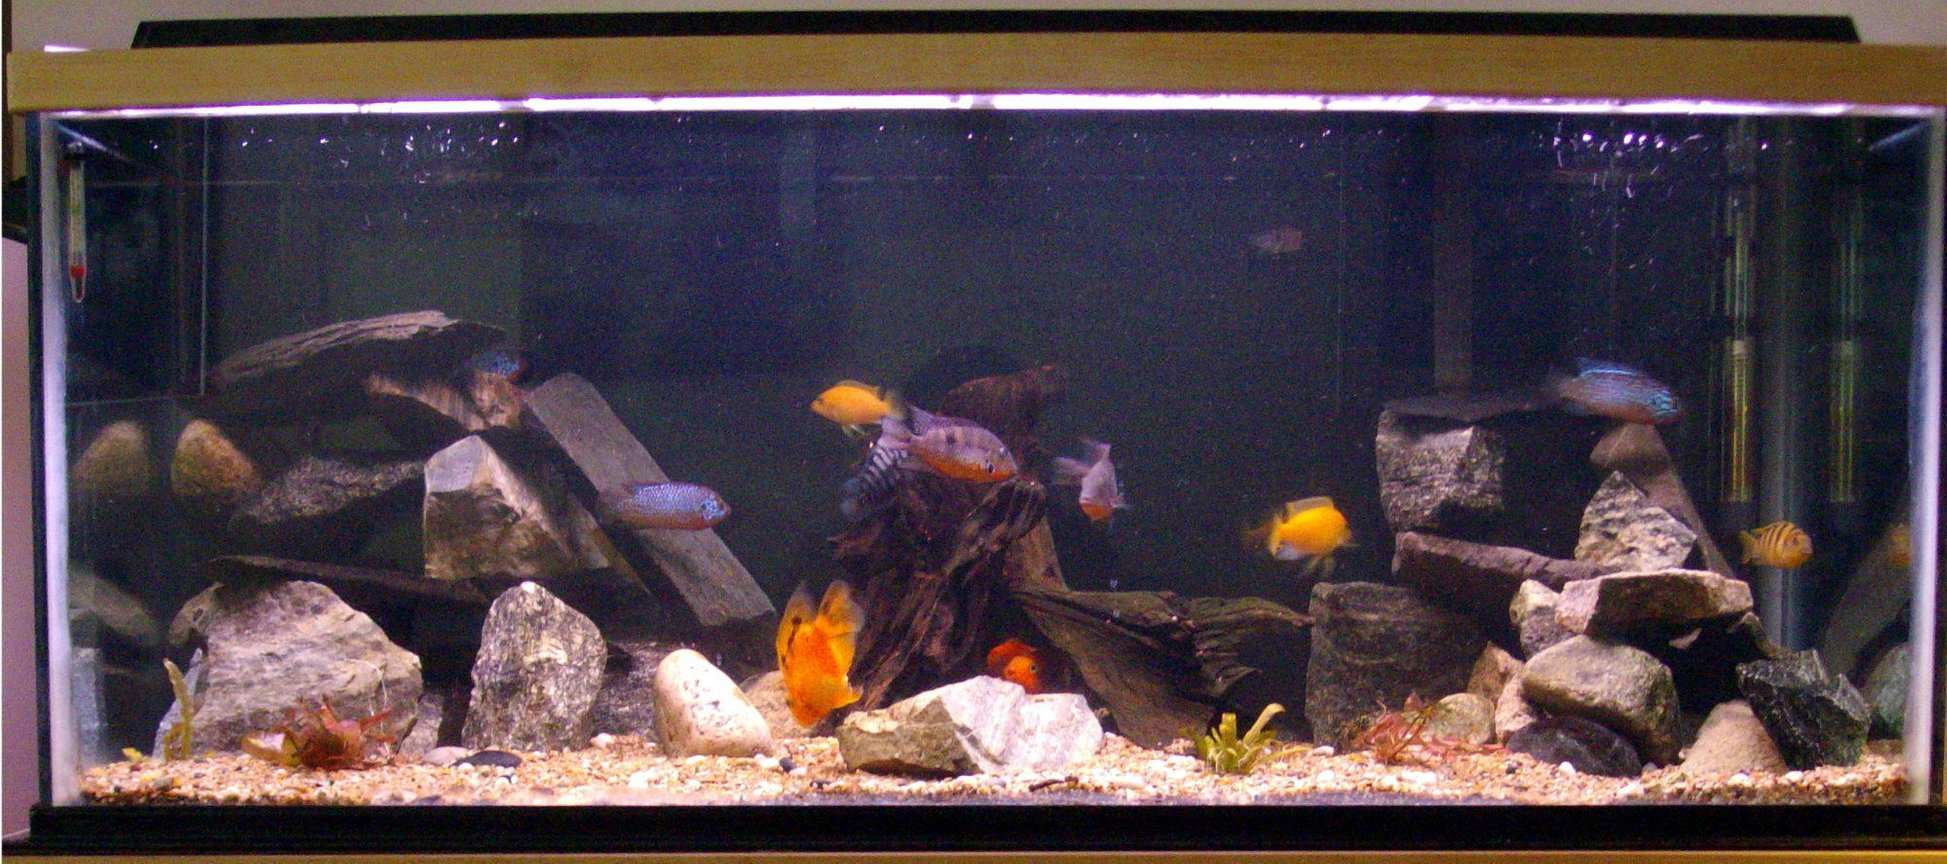 90 gallons freshwater fish tank (mostly fish and non-living decorations) - My 90 Gallon. Lots of rock caves and a few live plants.